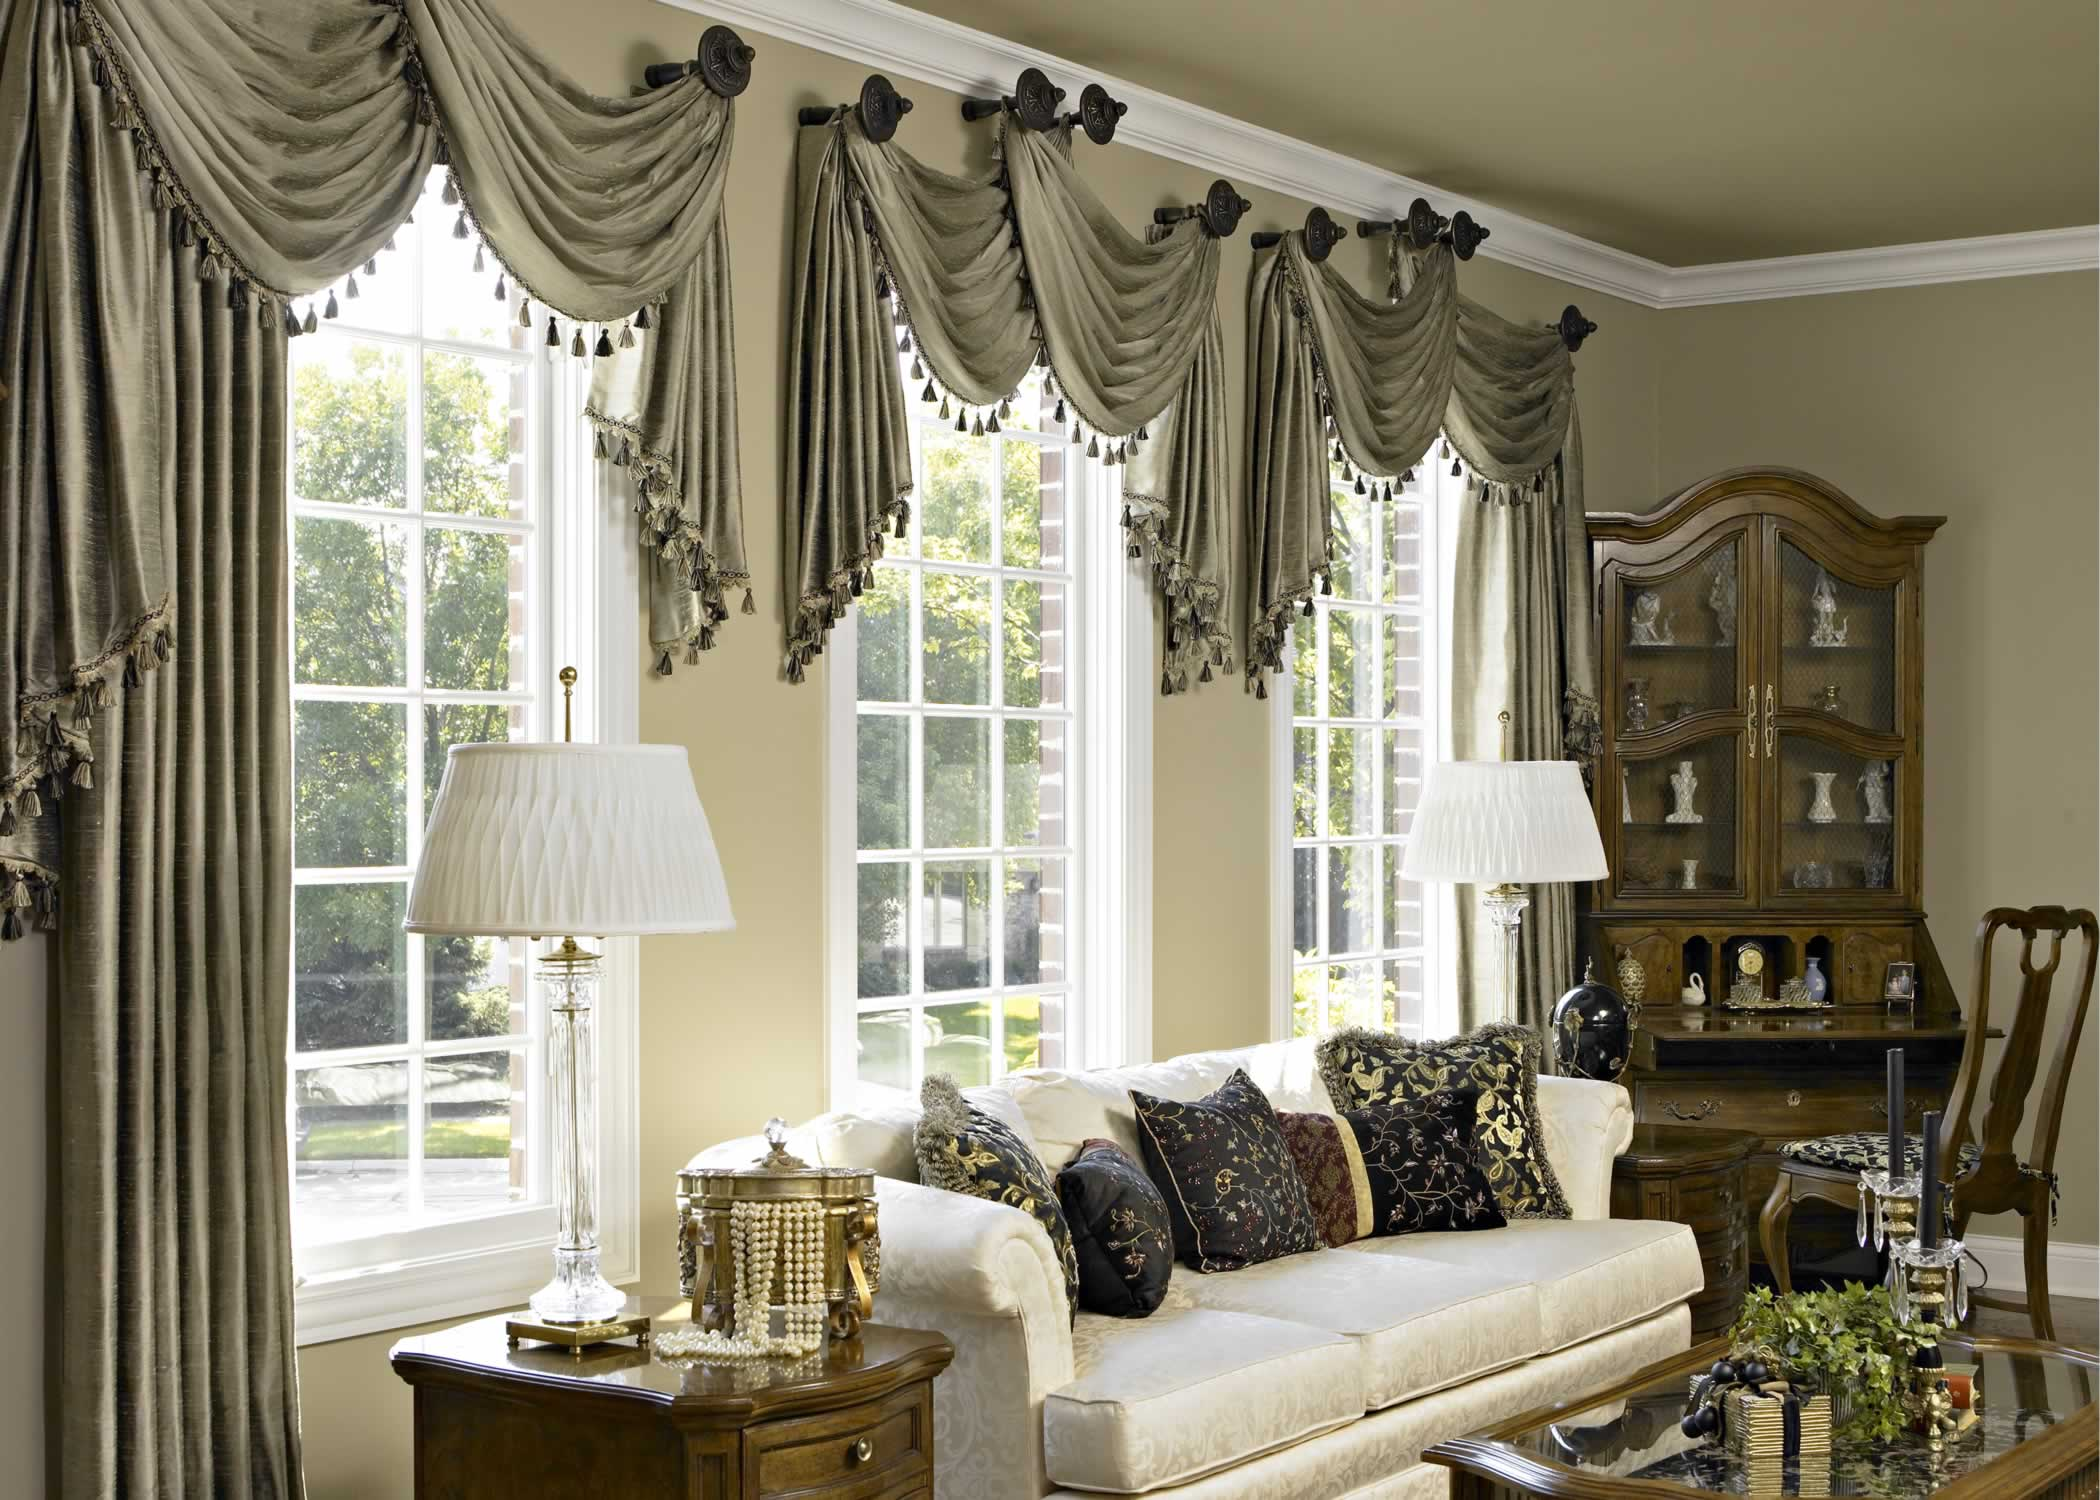 Need To Have Some Working Window Treatment Ideas We Have Them Artmakehome